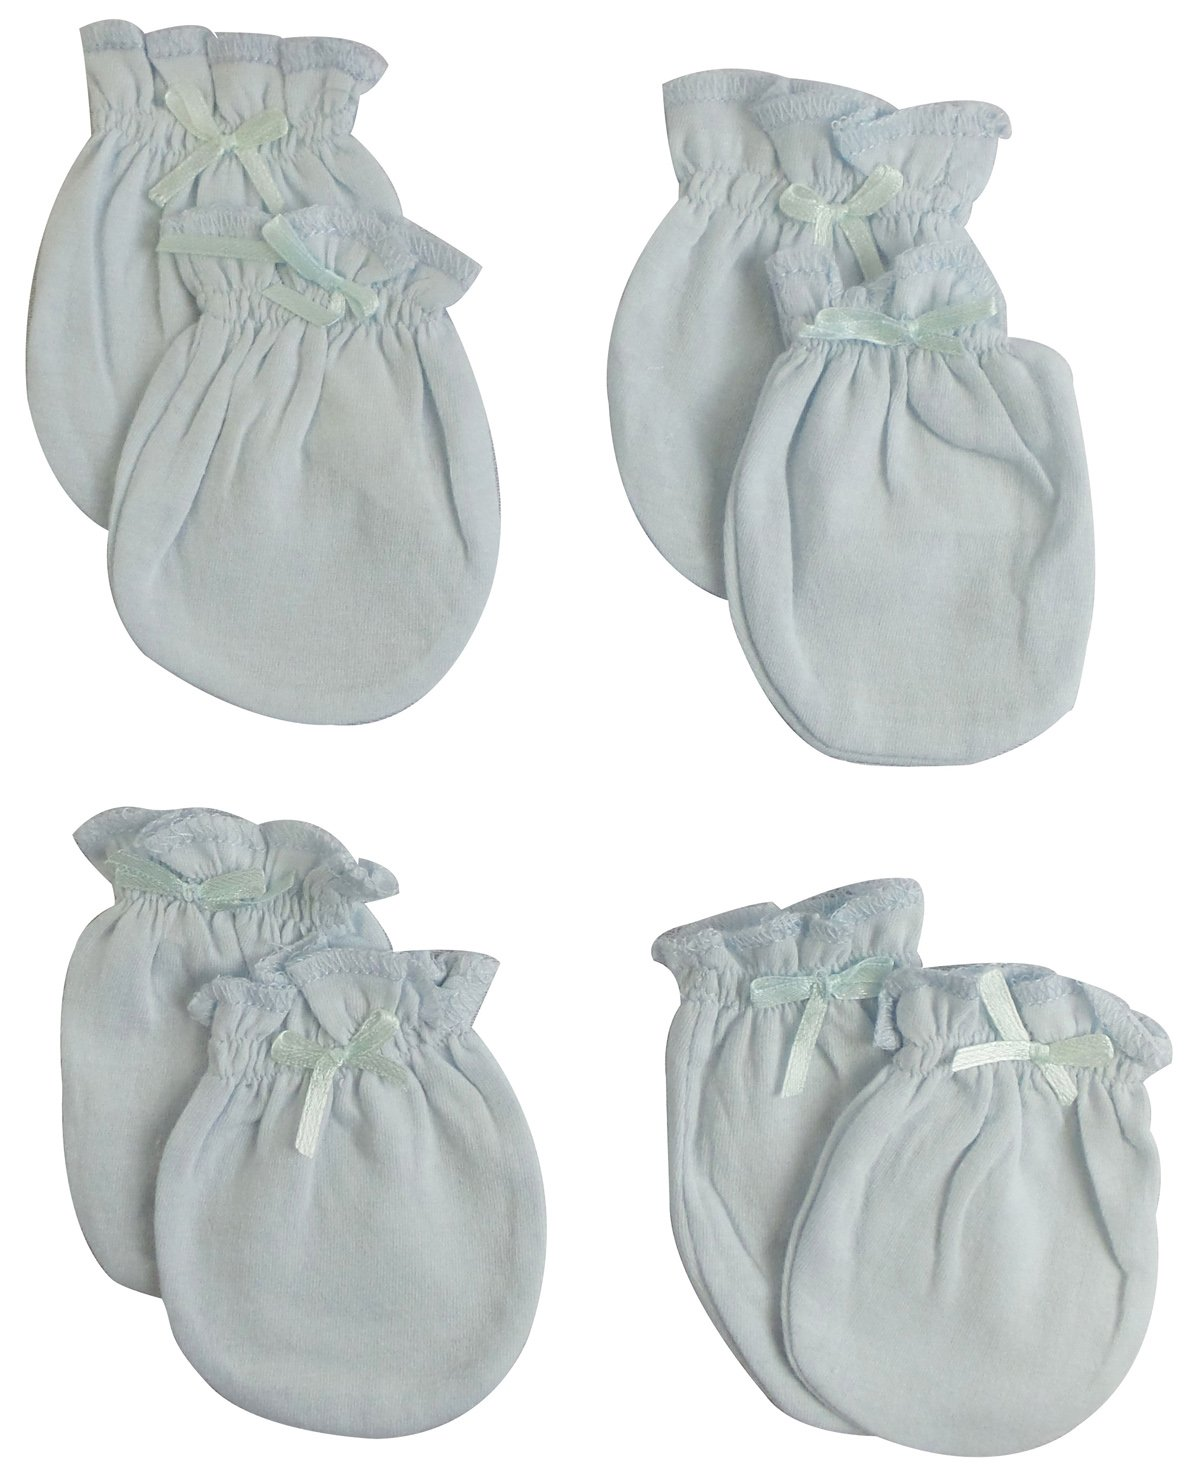 Infant Mittens (Pack of 4) - Baby Blue Product